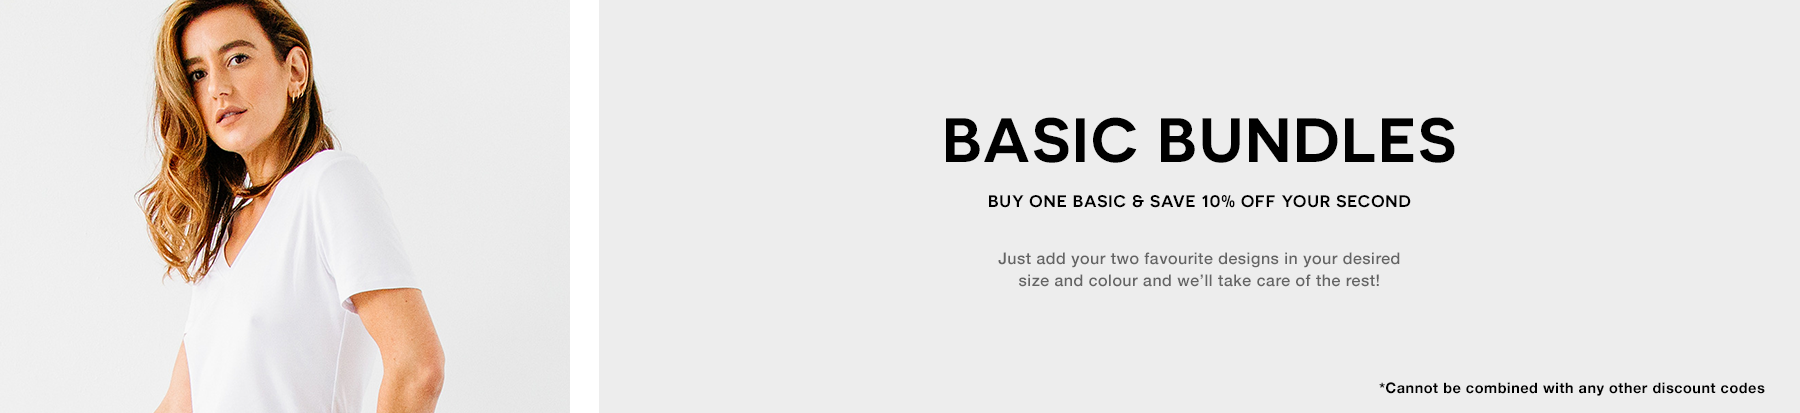 Basics Bundles